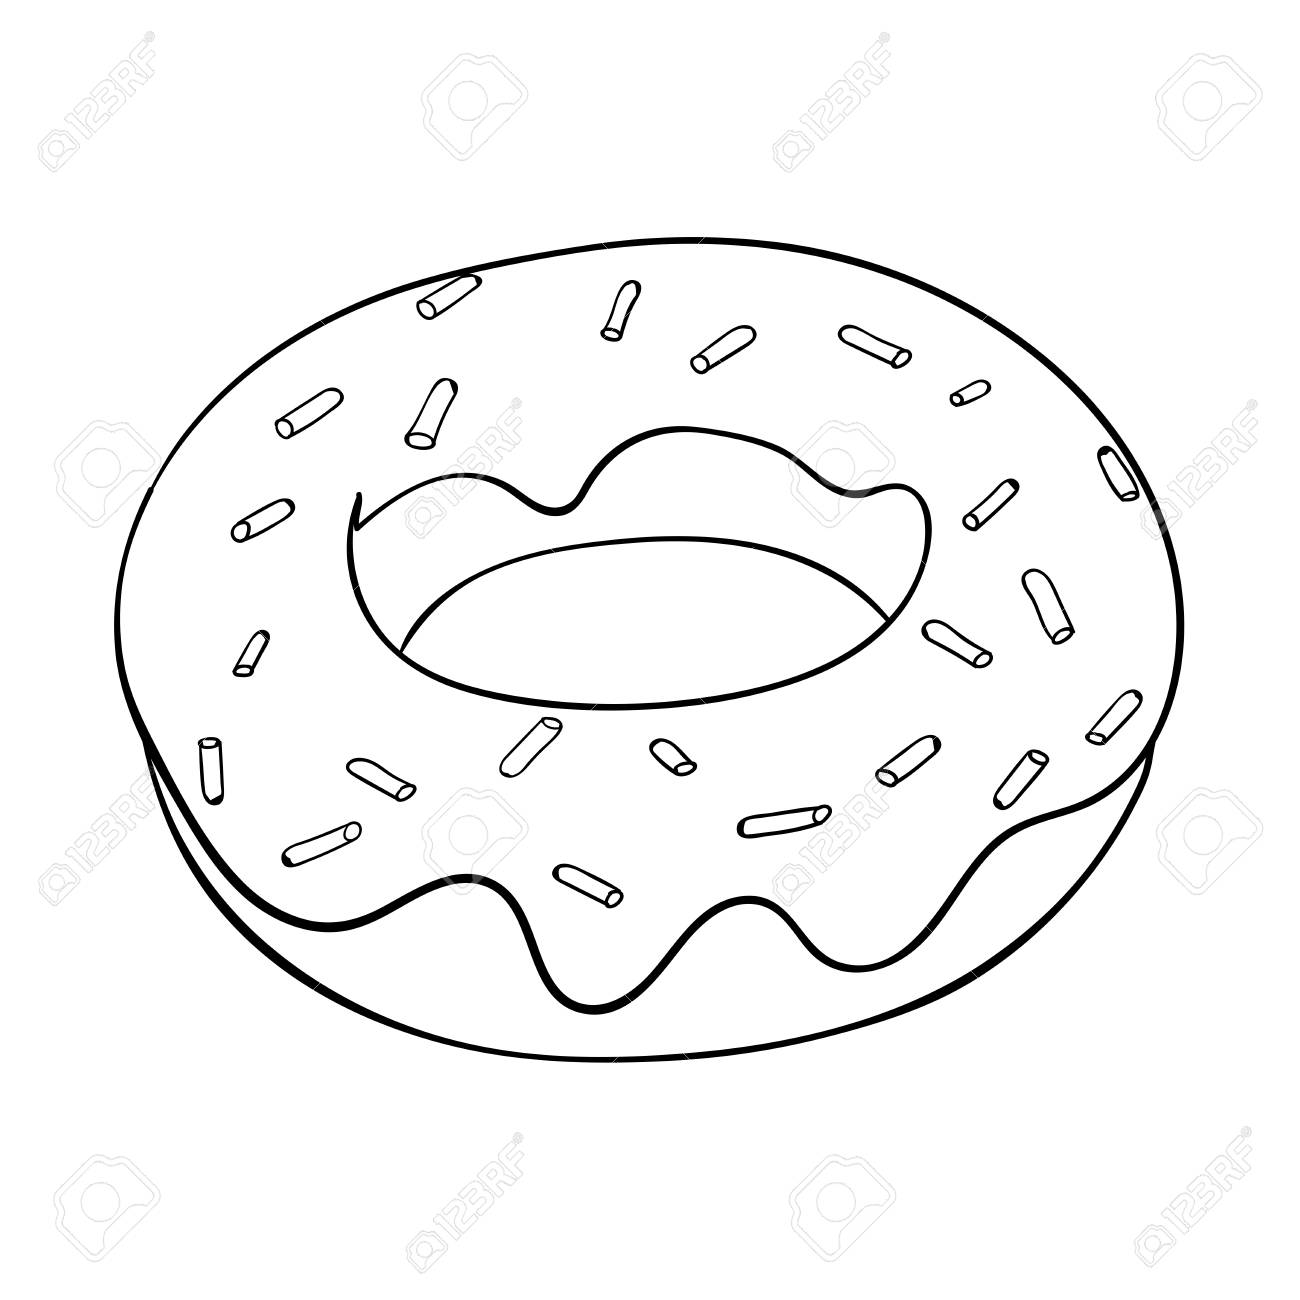 Donut. Black and white outline drawing. Vector illustration isolated...